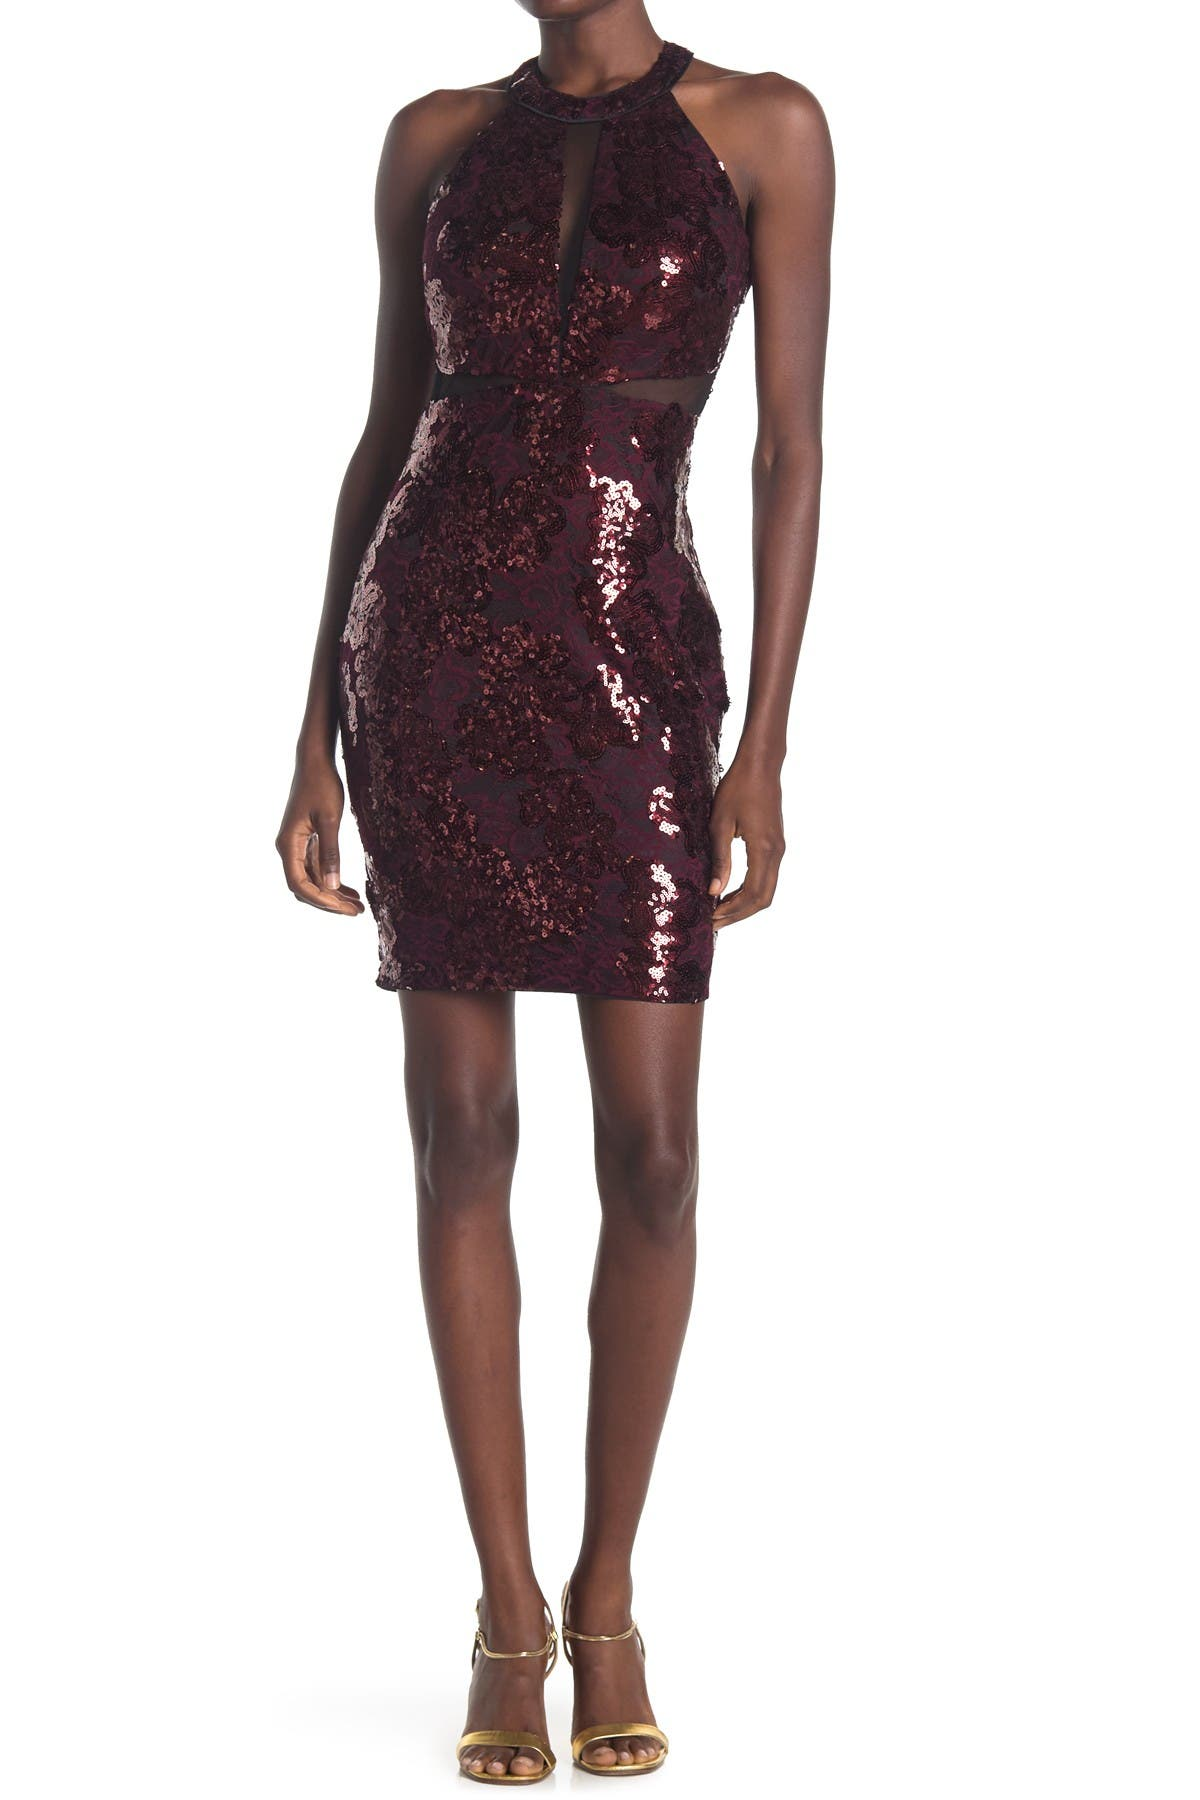 Image of GUESS Halter Neck Sequin Bodycon Dress